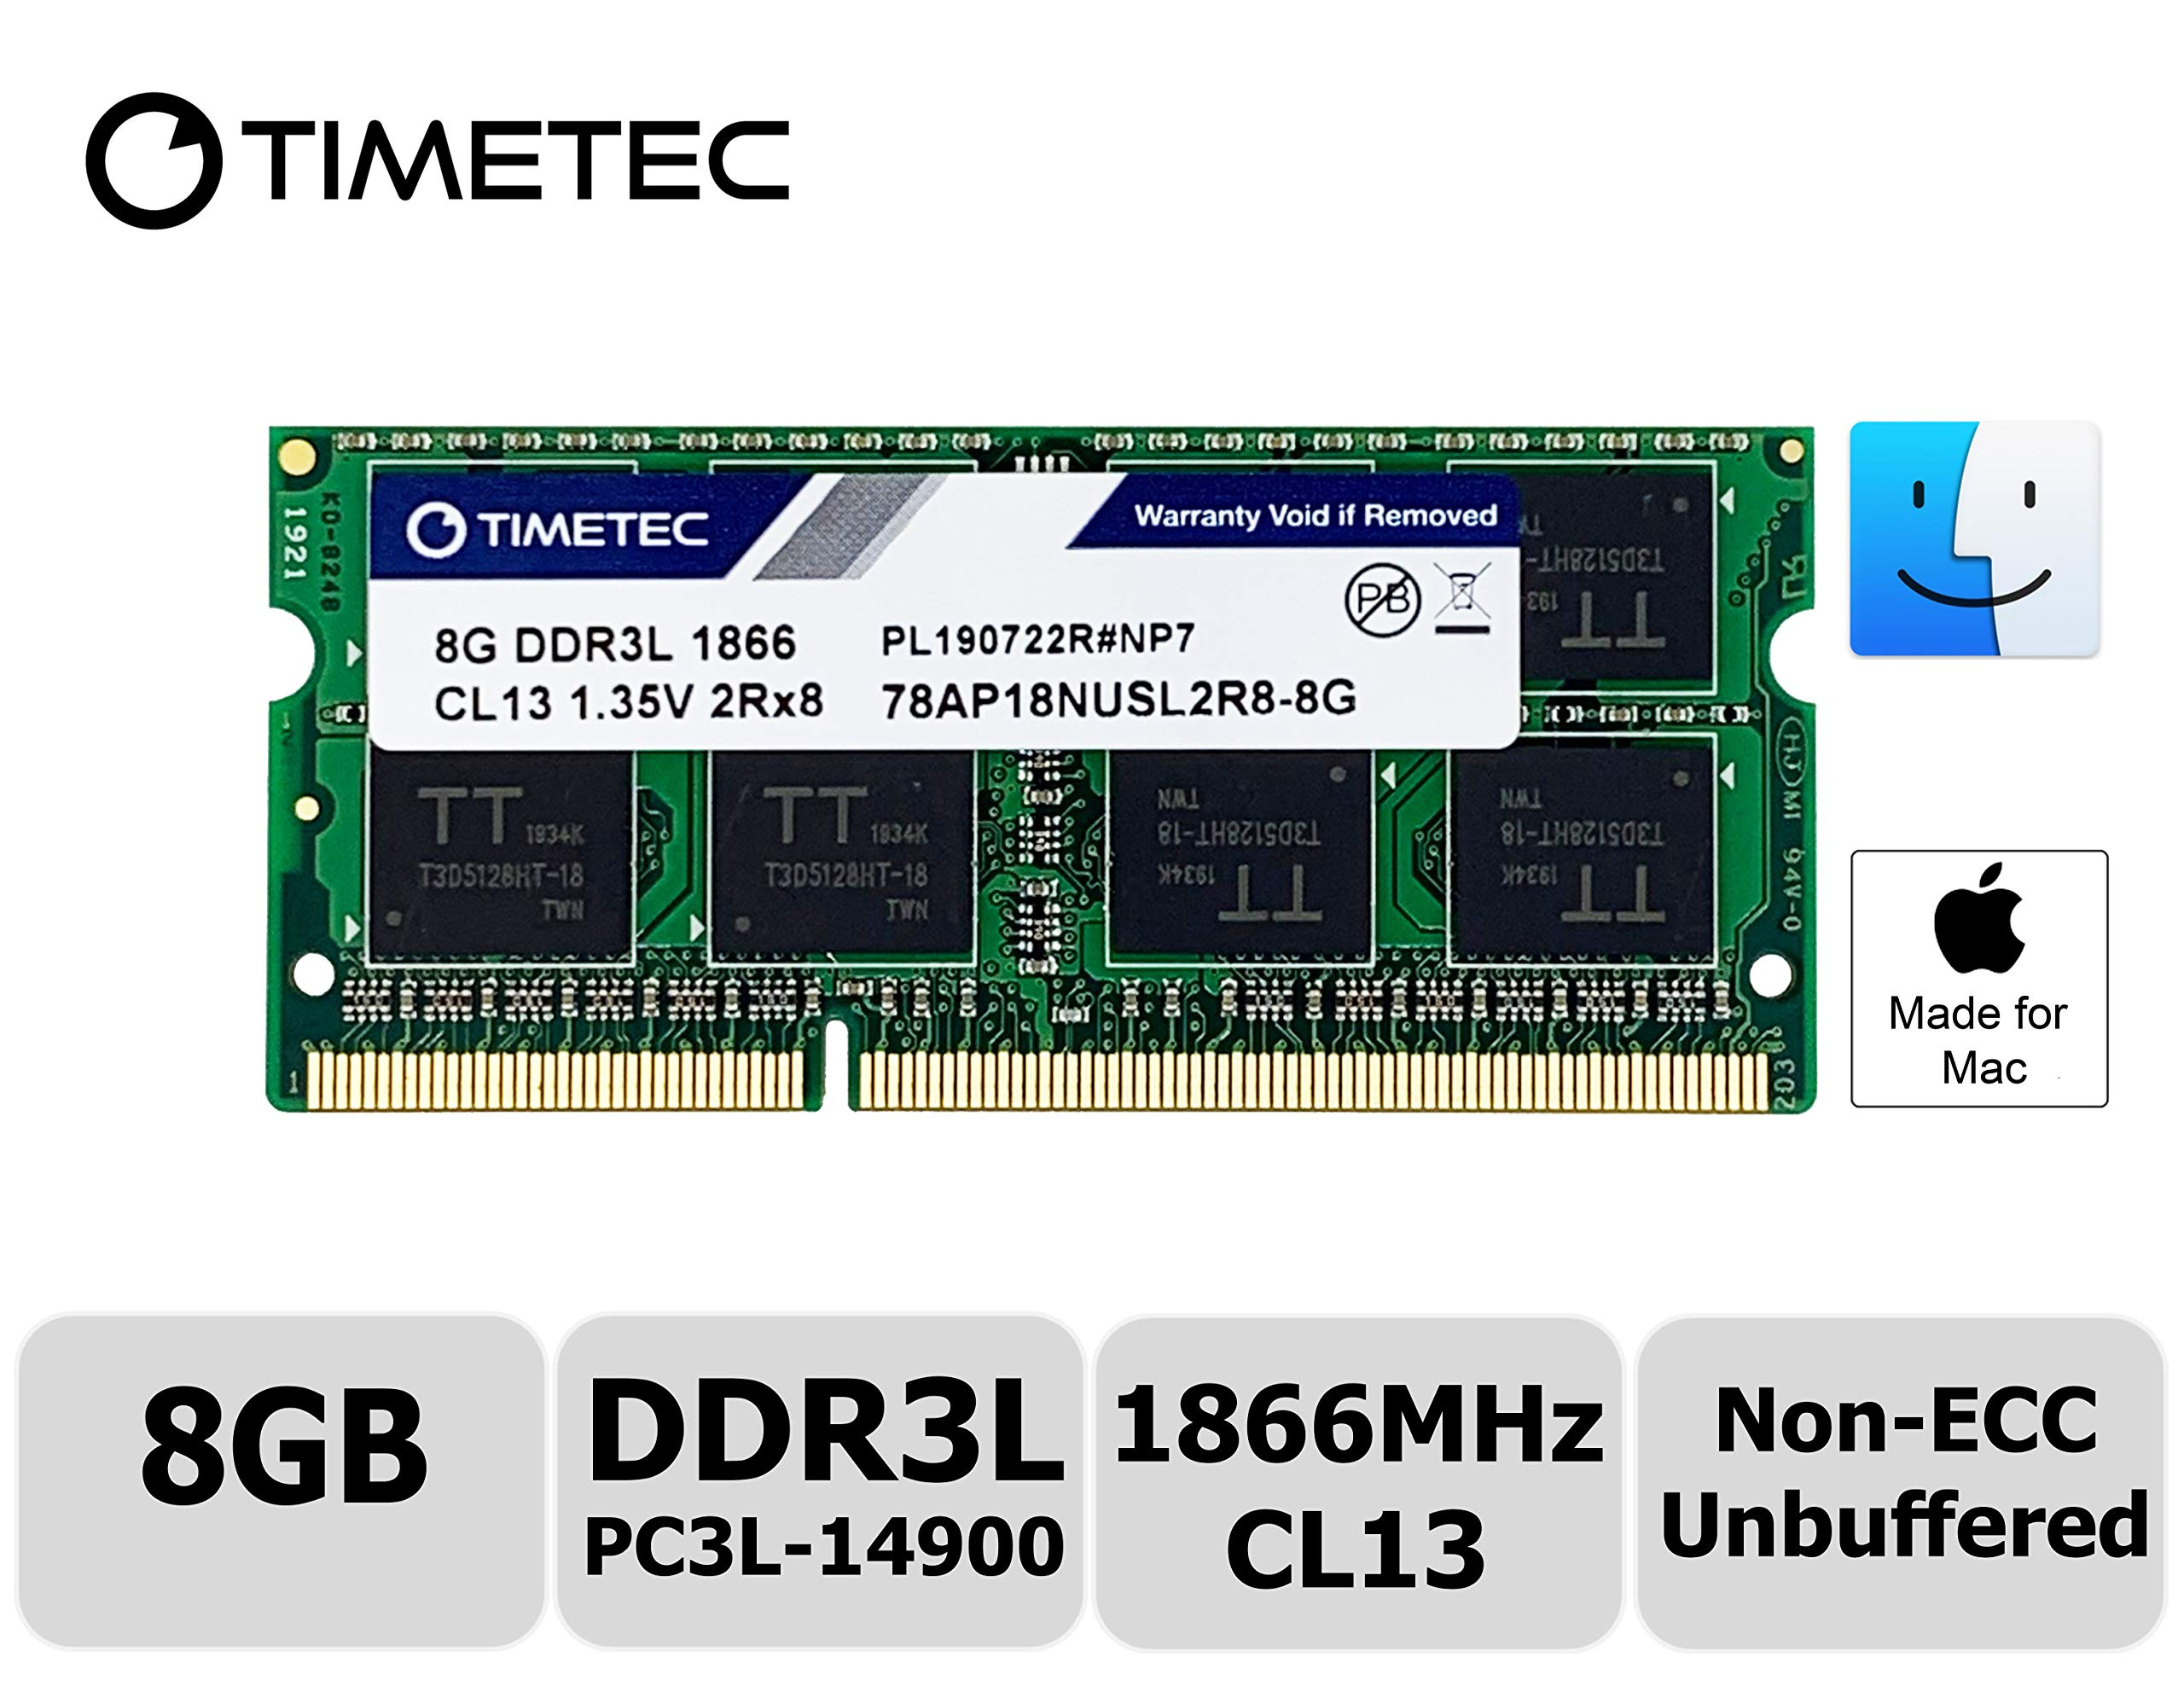 Memoria Ram 8gb Timetec Hynix Ic Compatible Para Apple Late 2015 iMac 27-inch W/retina 5k Display Ddr3l 1866mhz / 1867mh